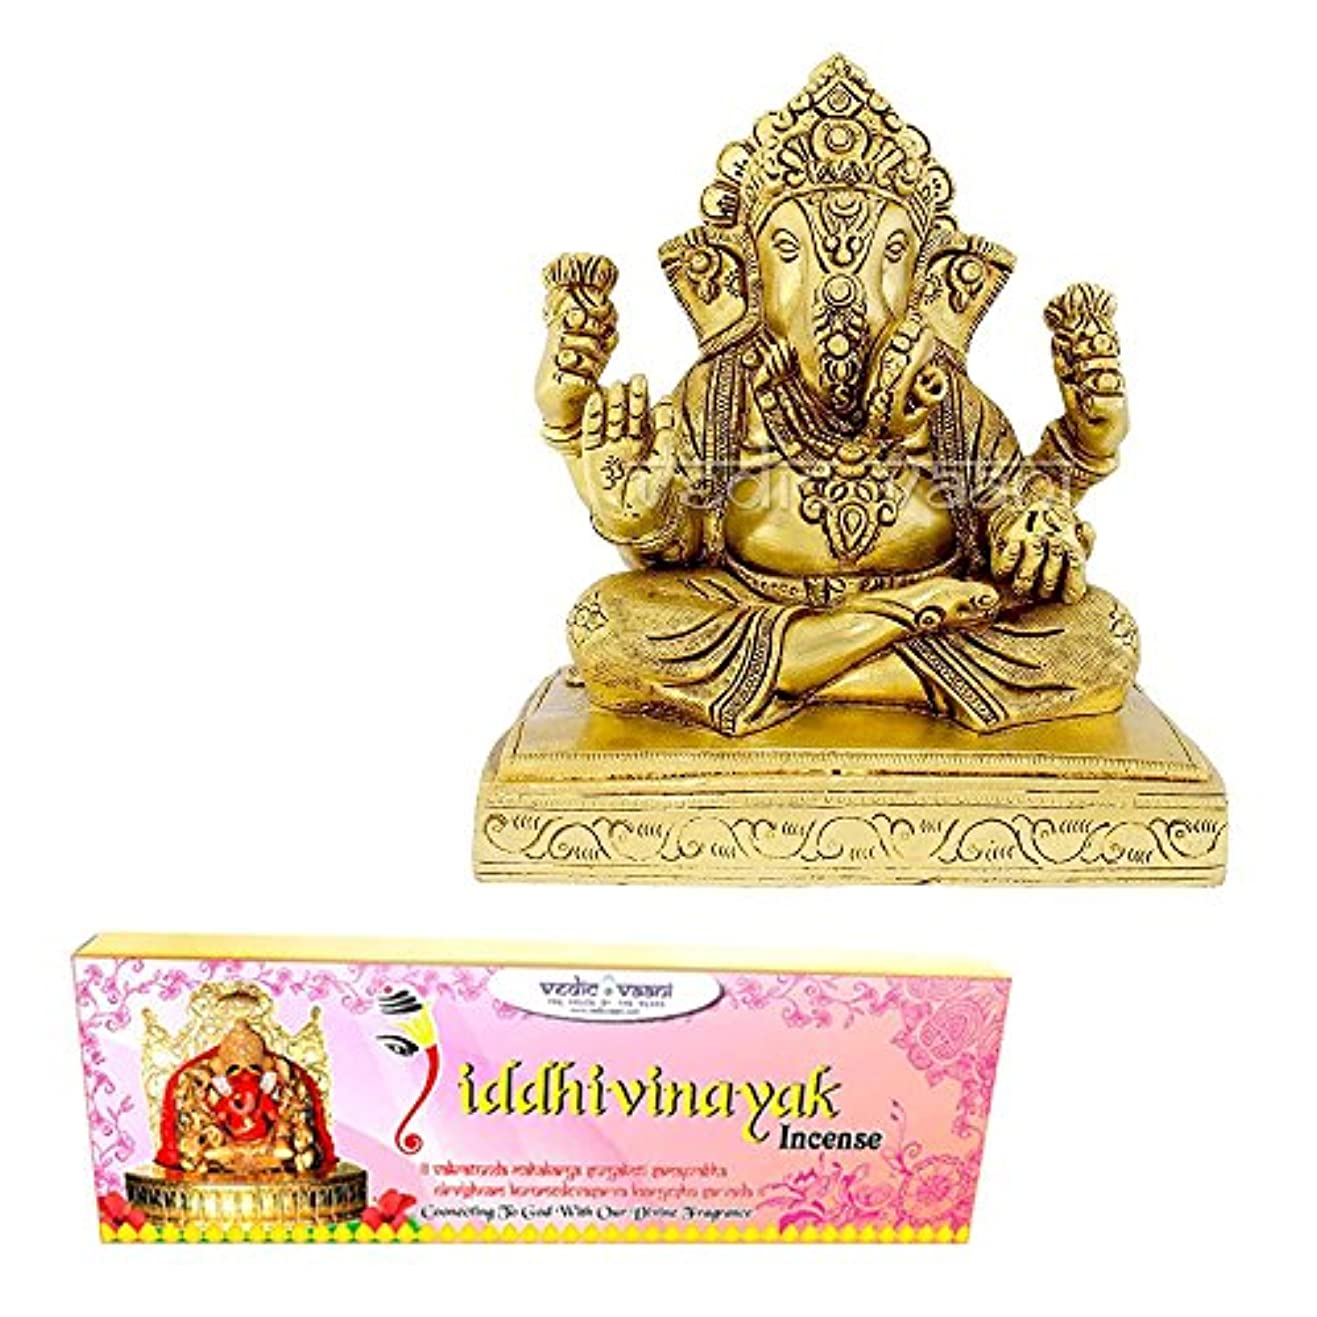 フロンティアサスペンド変換するVedic Vaani Dagadusheth Ganpati Bappa Fine Idol In Brass With Siddhi Vinayak Incense